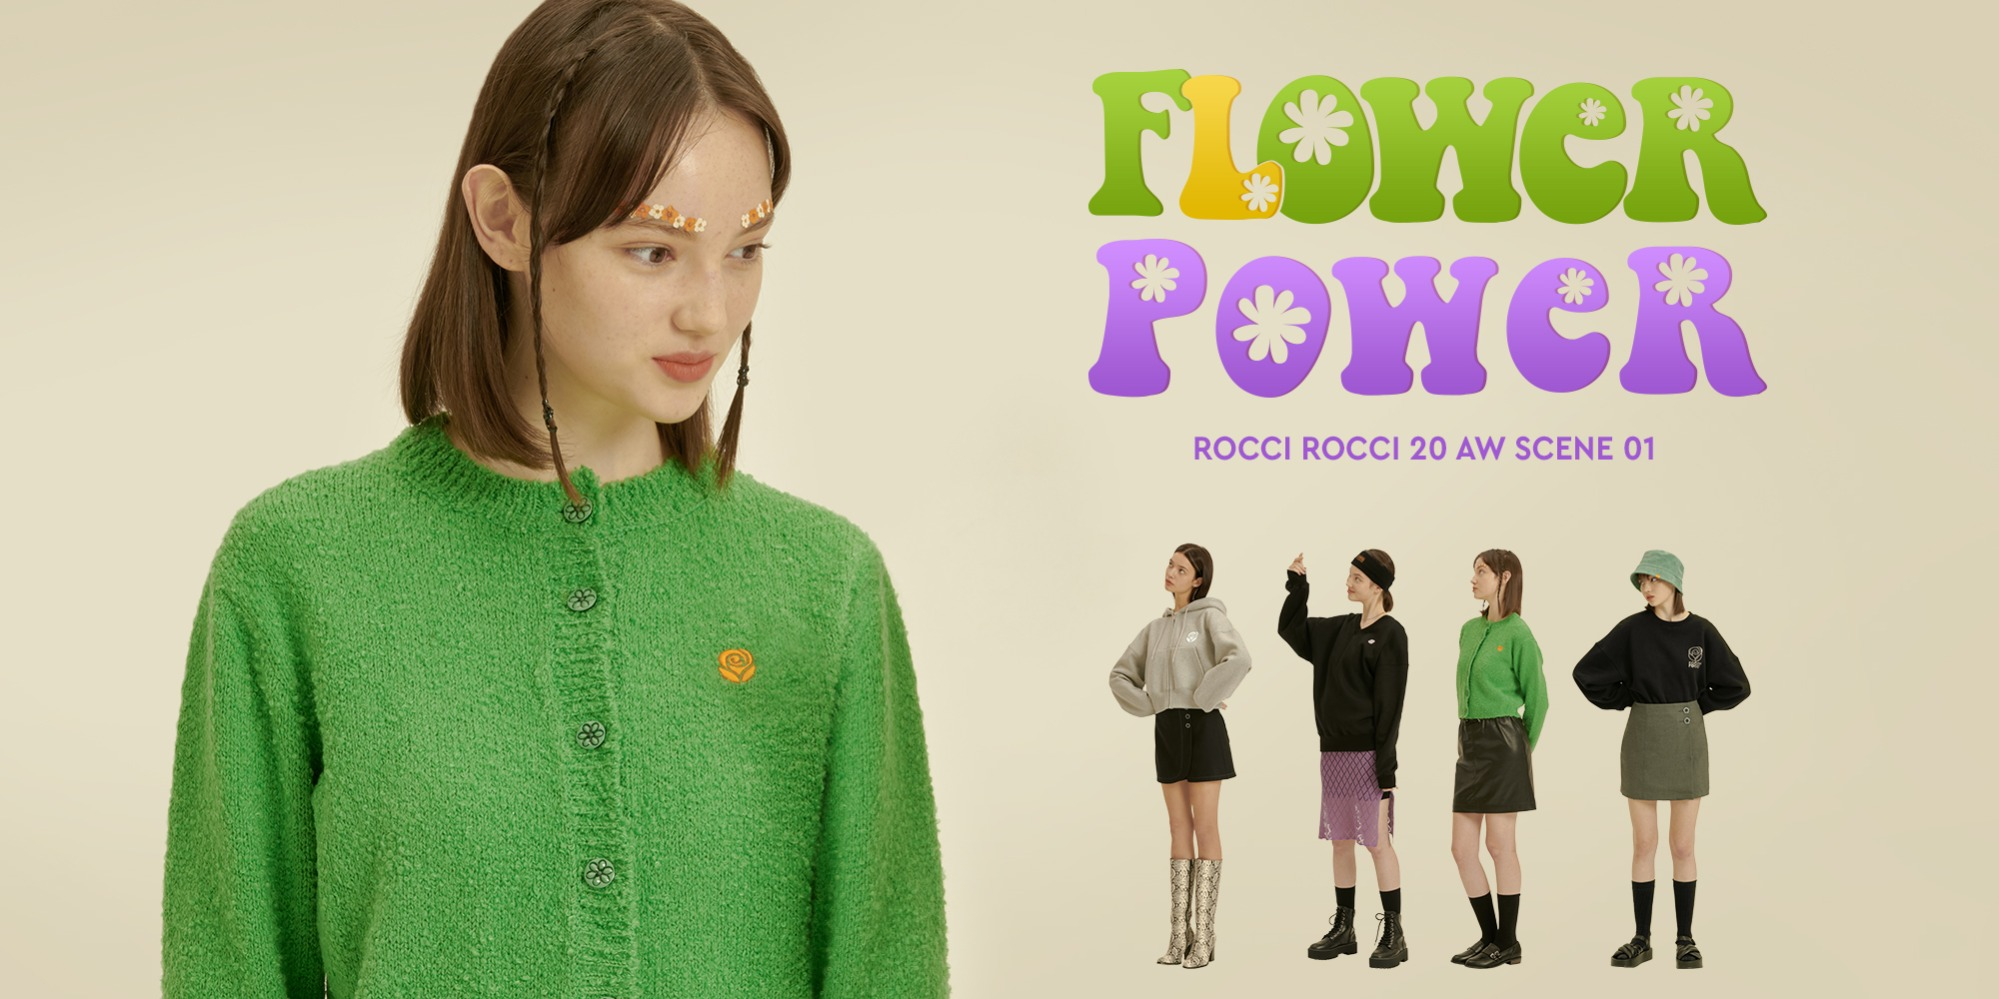 20 AW COLLECTION. FLOWER POWER #SCENE 0120 AW COLLECTION. FLOWER POWER #SCENE 01자체브랜드